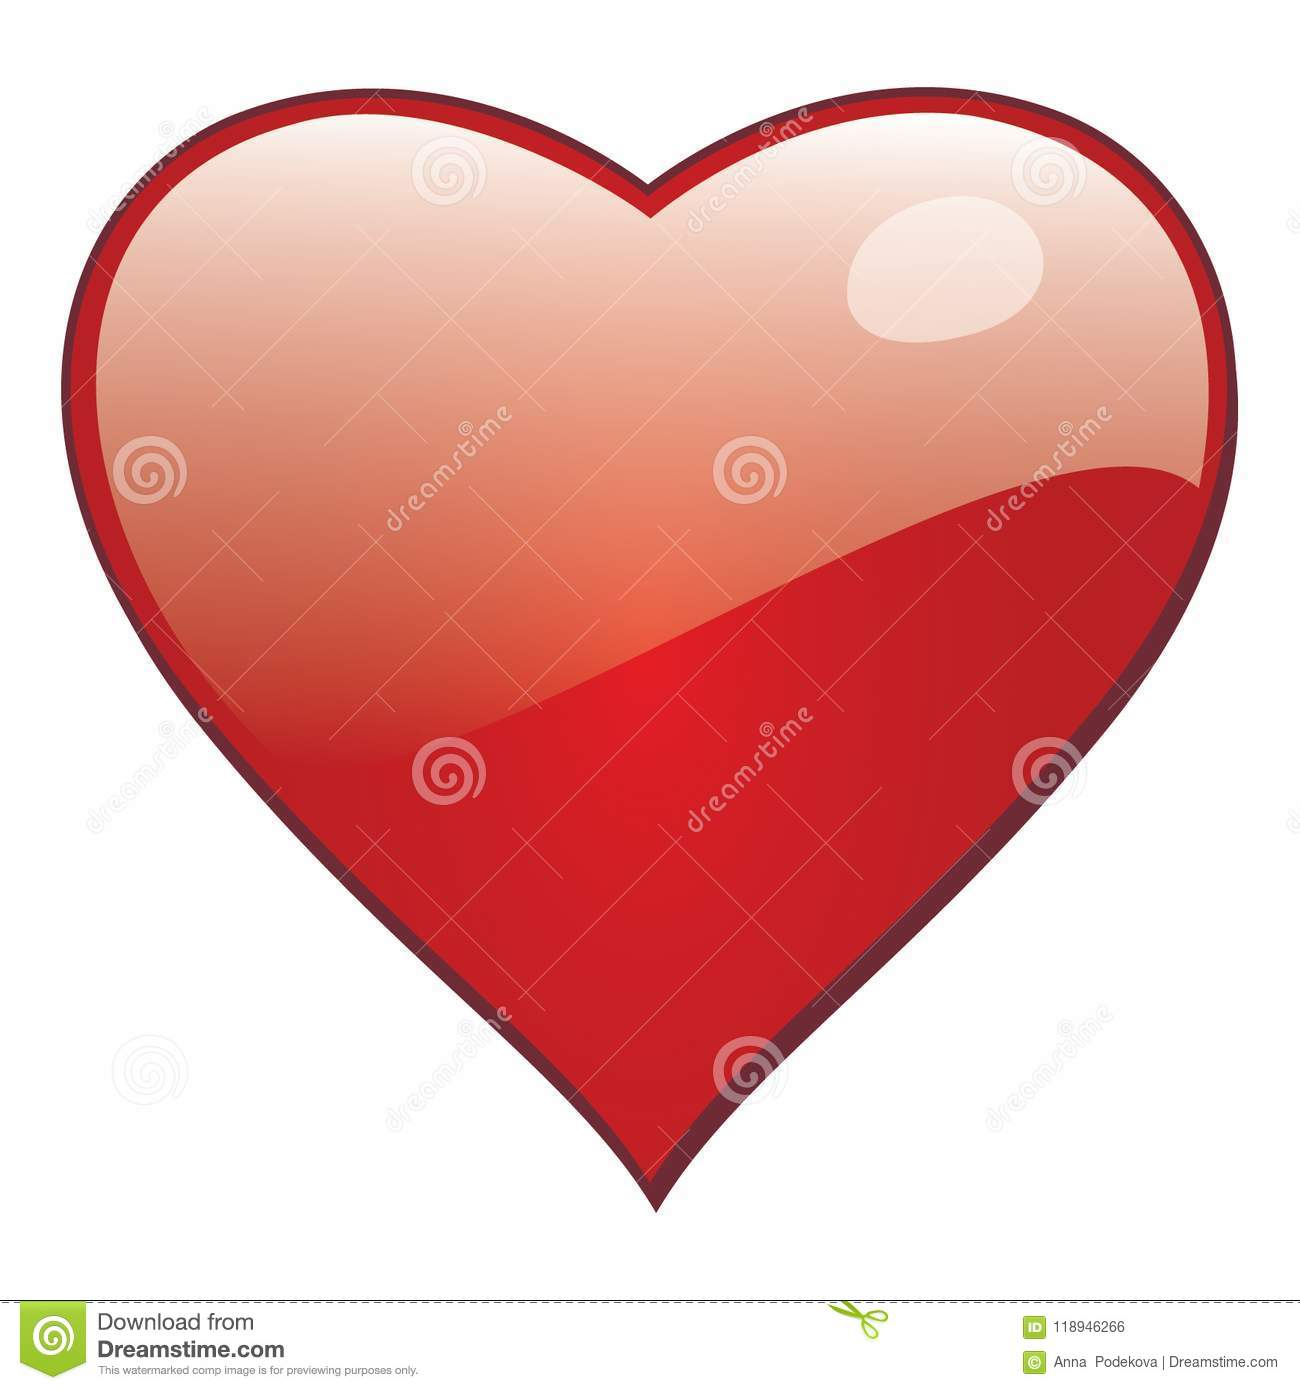 Vector heart for saint Valentine greeting cards and romantic love.